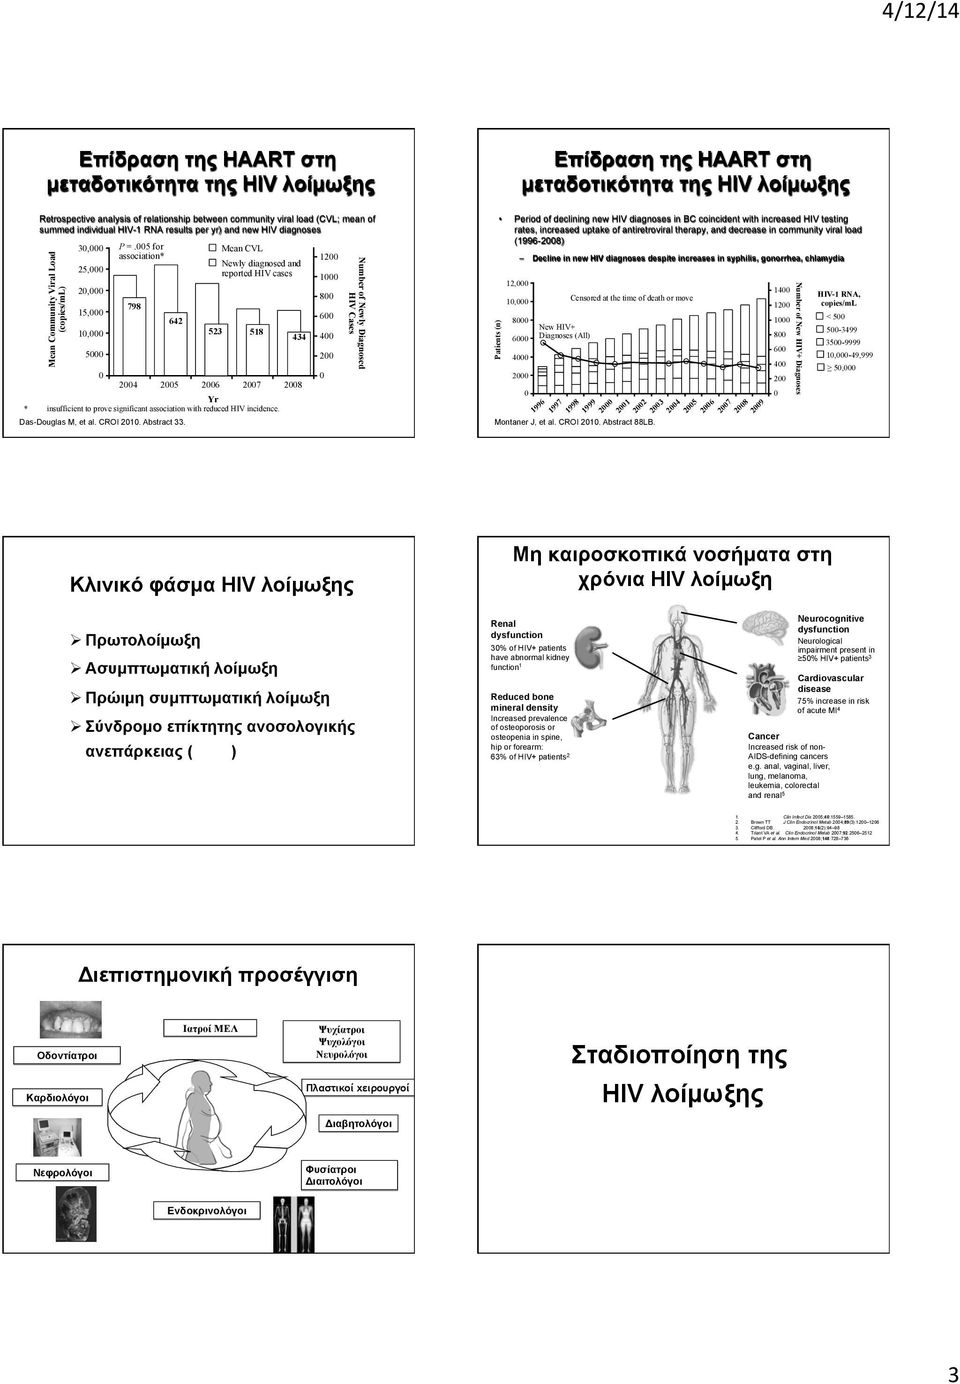 Mean CVL Newly diagnosed and reported HIV cases 523 518 2004 2005 2006 2007 2008 Yr *Data insufficient to prove significant association with reduced HIV incidence.